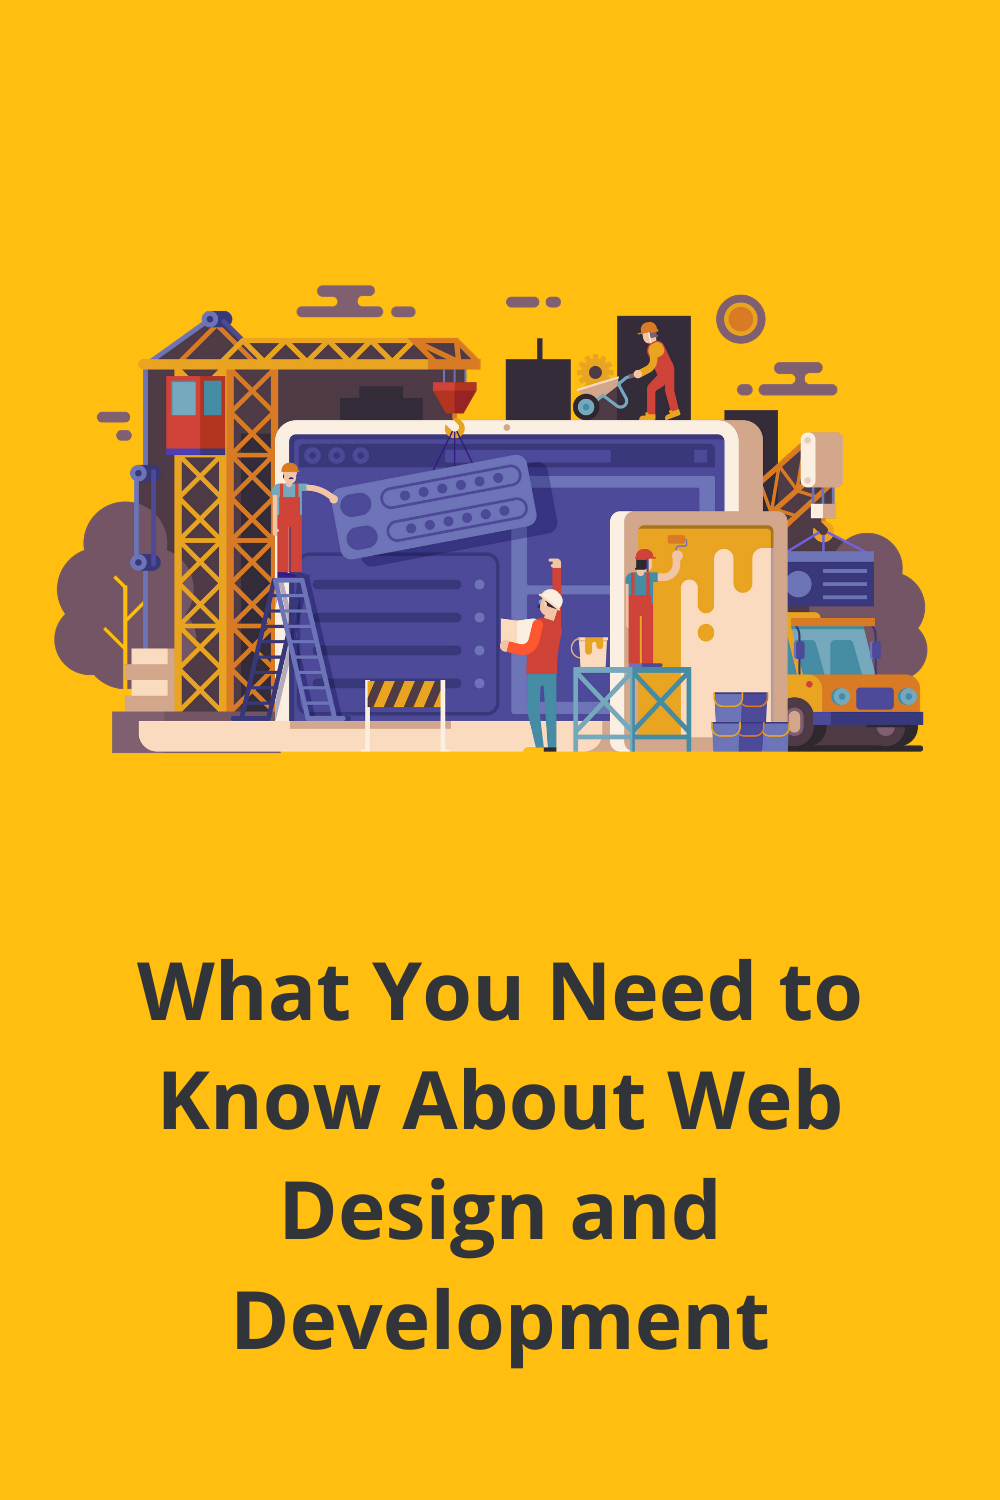 web design and development,what is web design and development